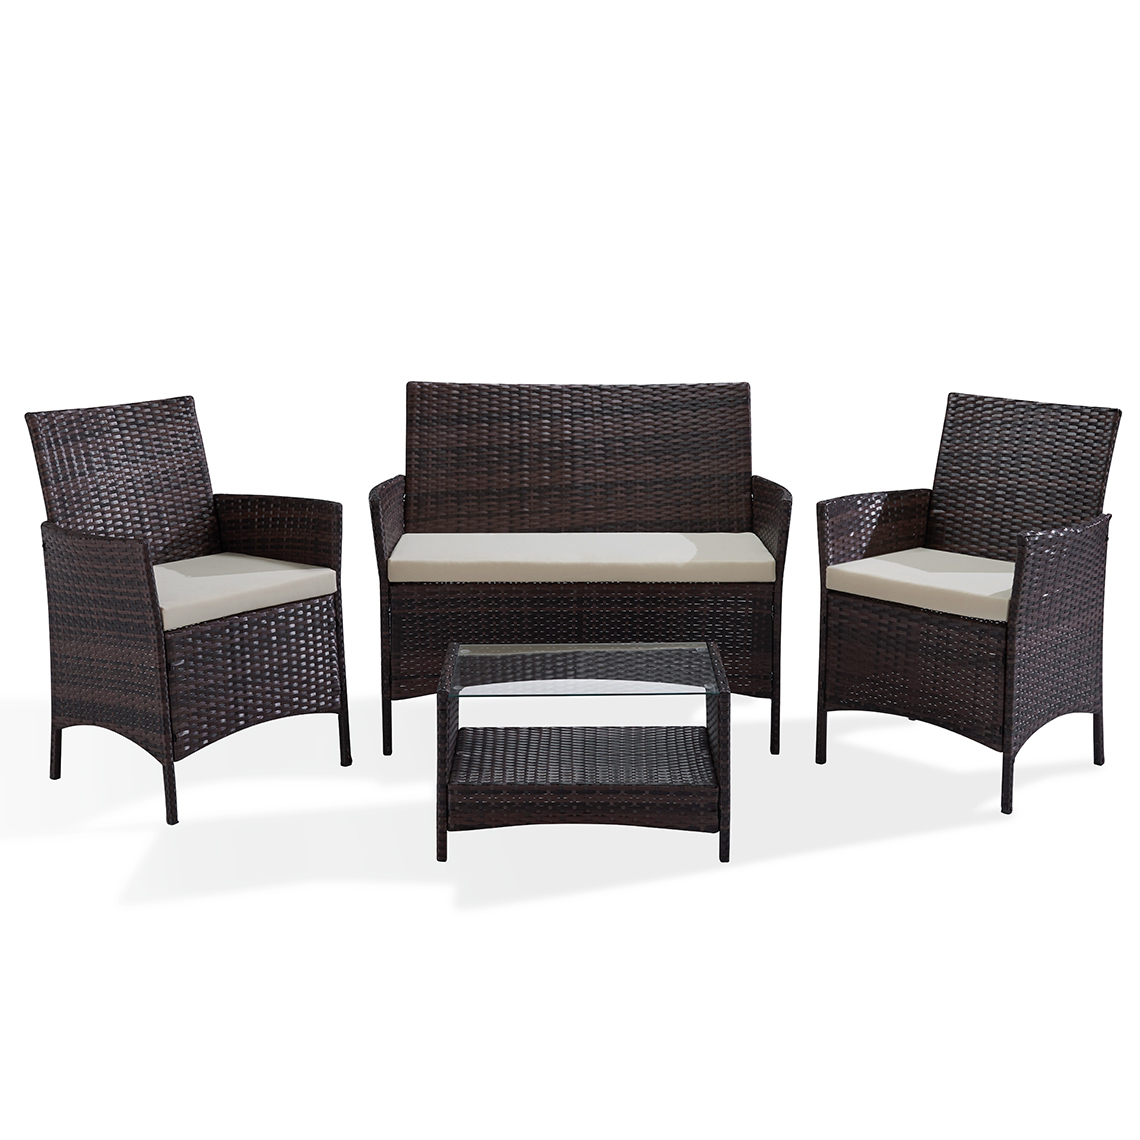 Gartenmobel Lounge Brooklyn Braun Set Lounge Polyrattan